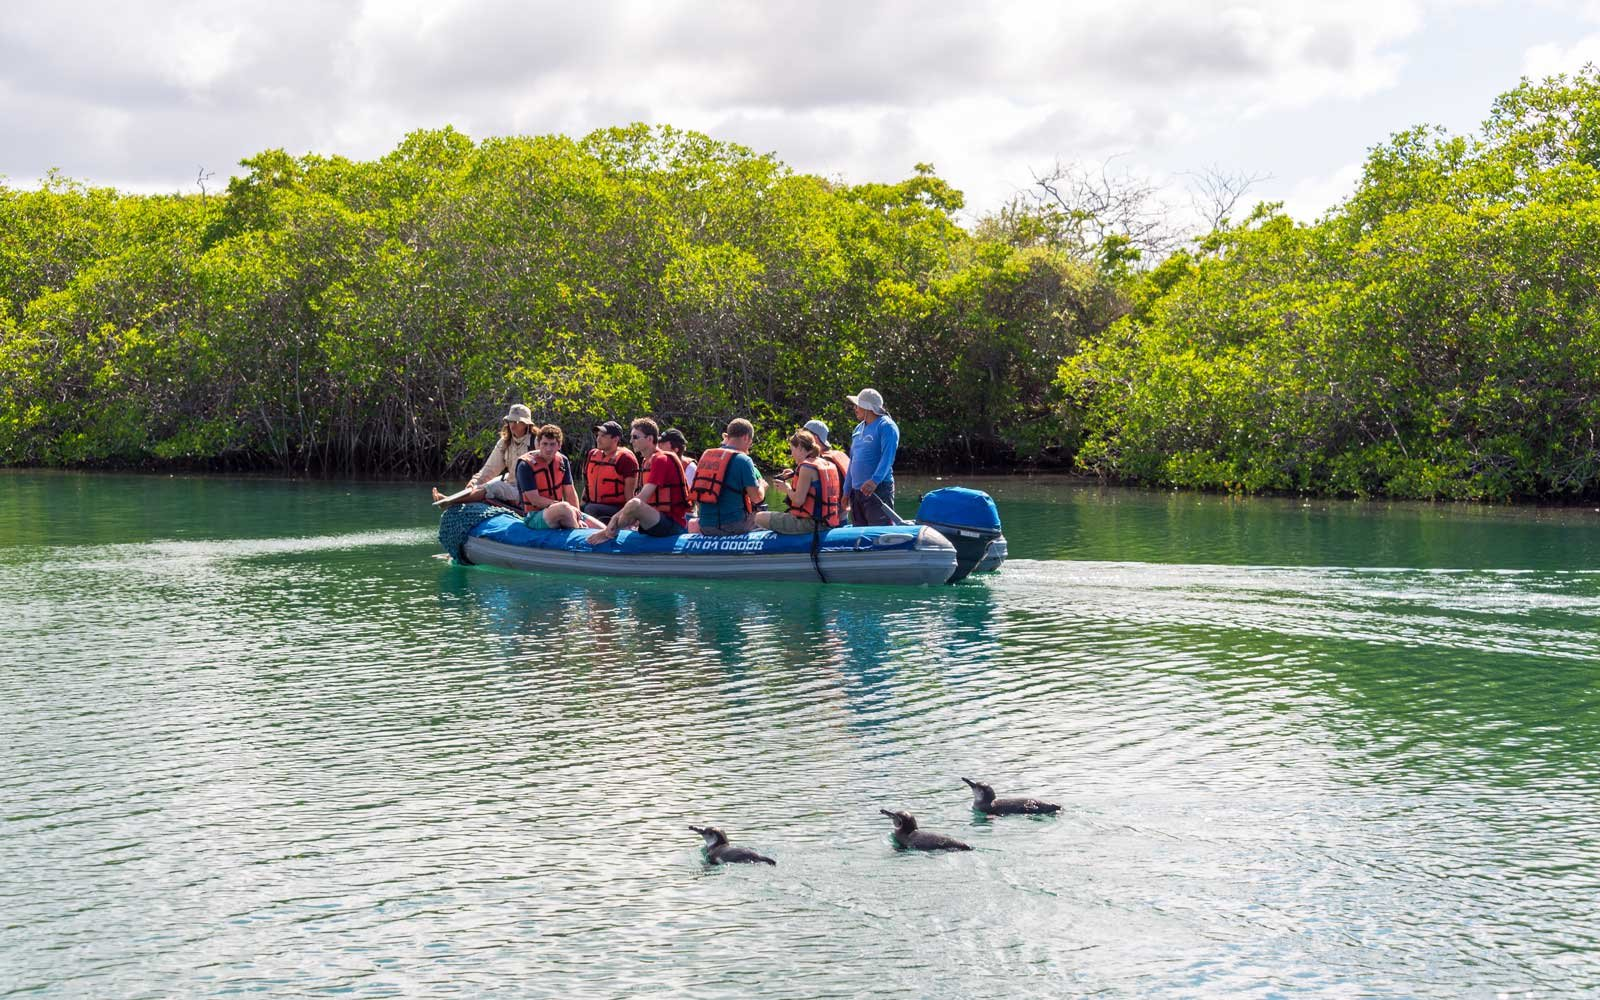 Penguins swimming next to a boat of tourists in the Galapagos Islands in Ecuador